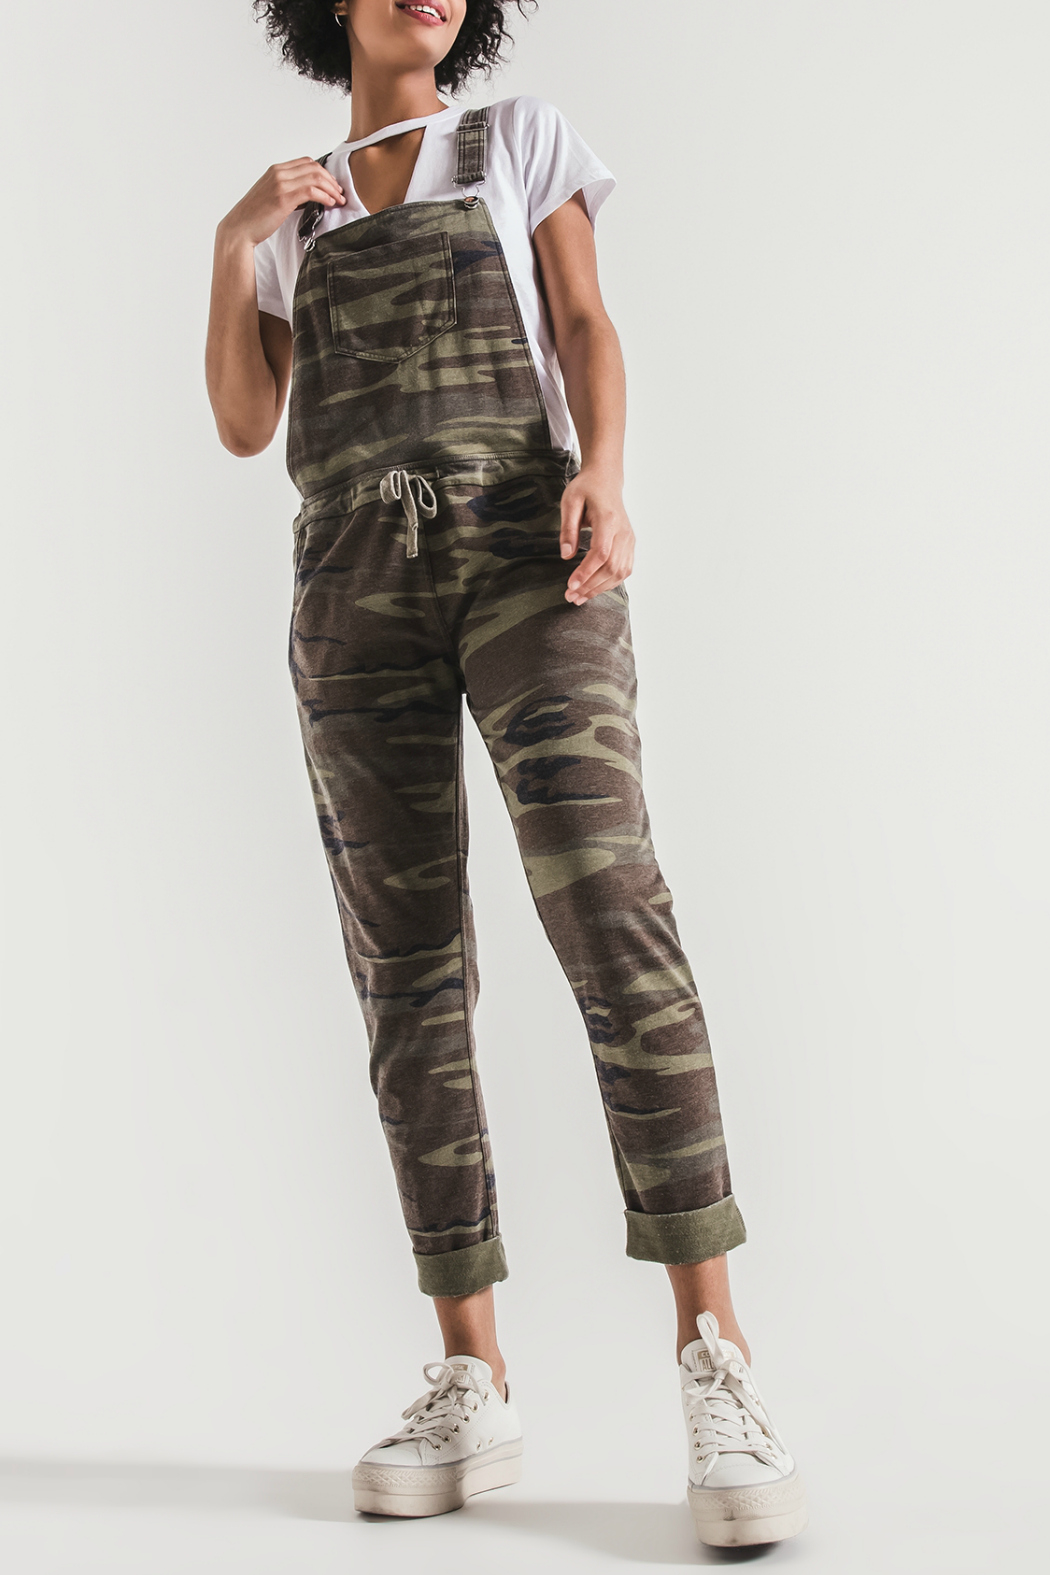 z supply Camo Overalls - Front Cropped Image